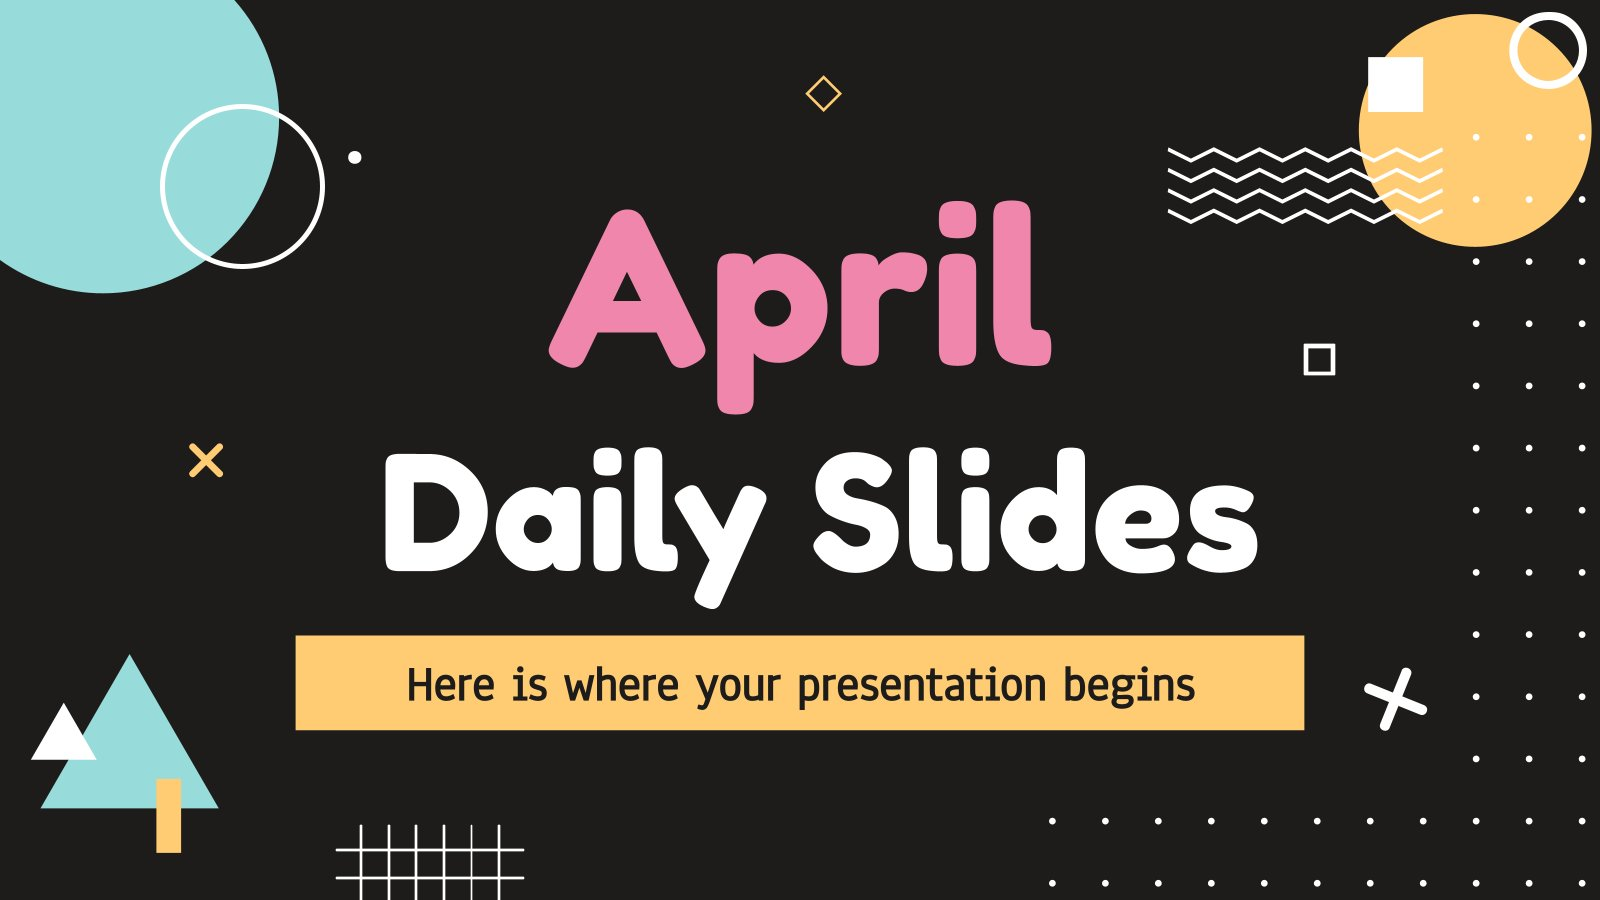 April Daily Slides presentation template